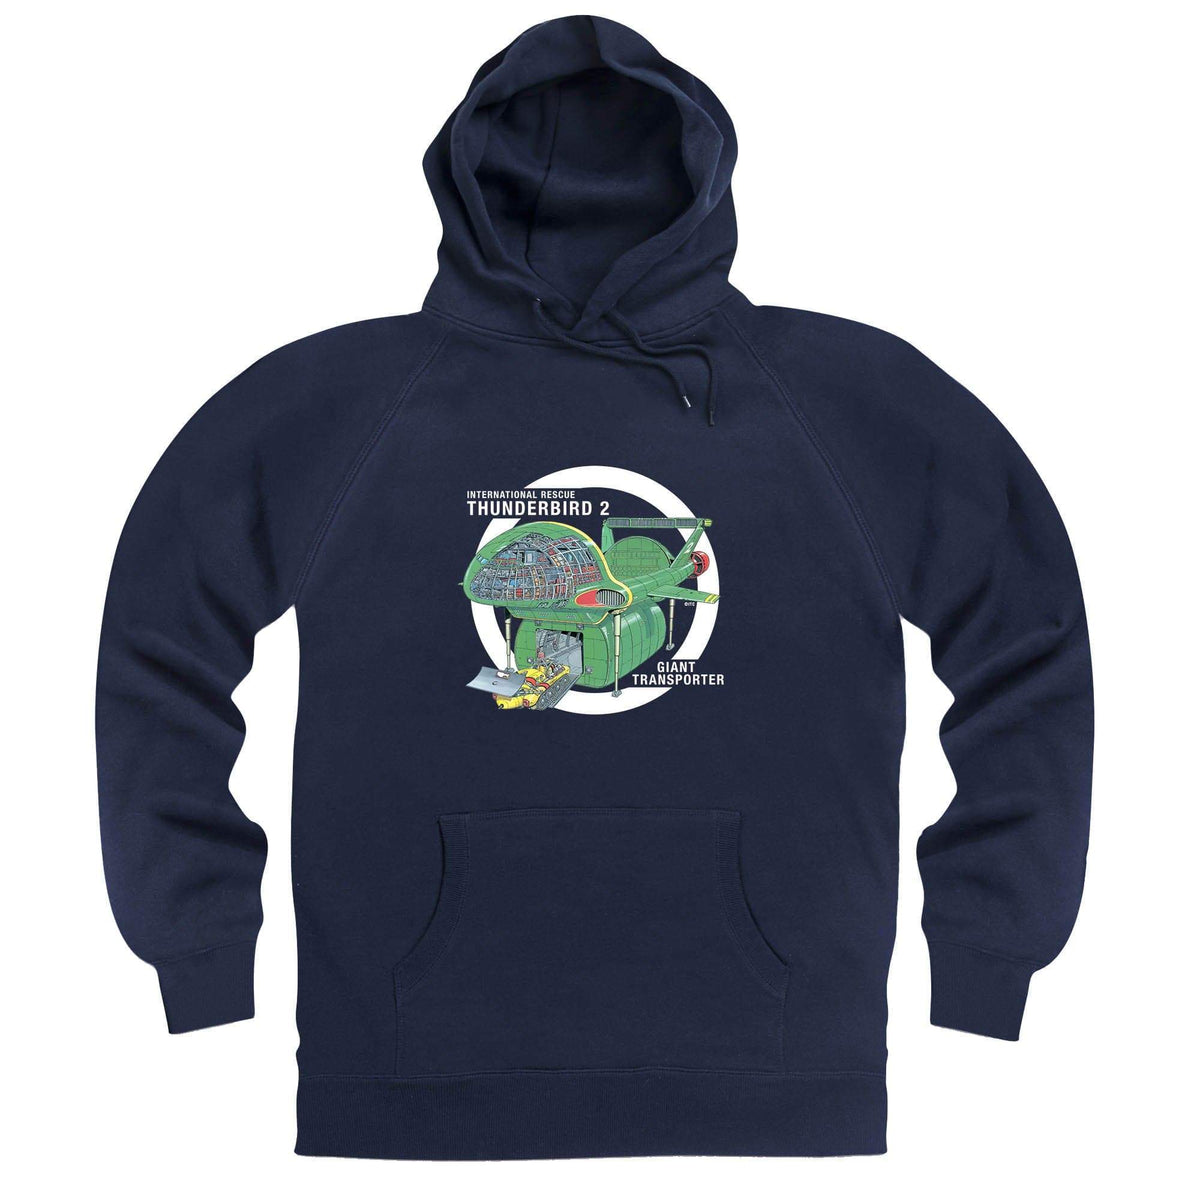 Thunderbirds: Thunderbird 2 Cutaway Hoodie [Official & Exclusive] - The Gerry Anderson Store